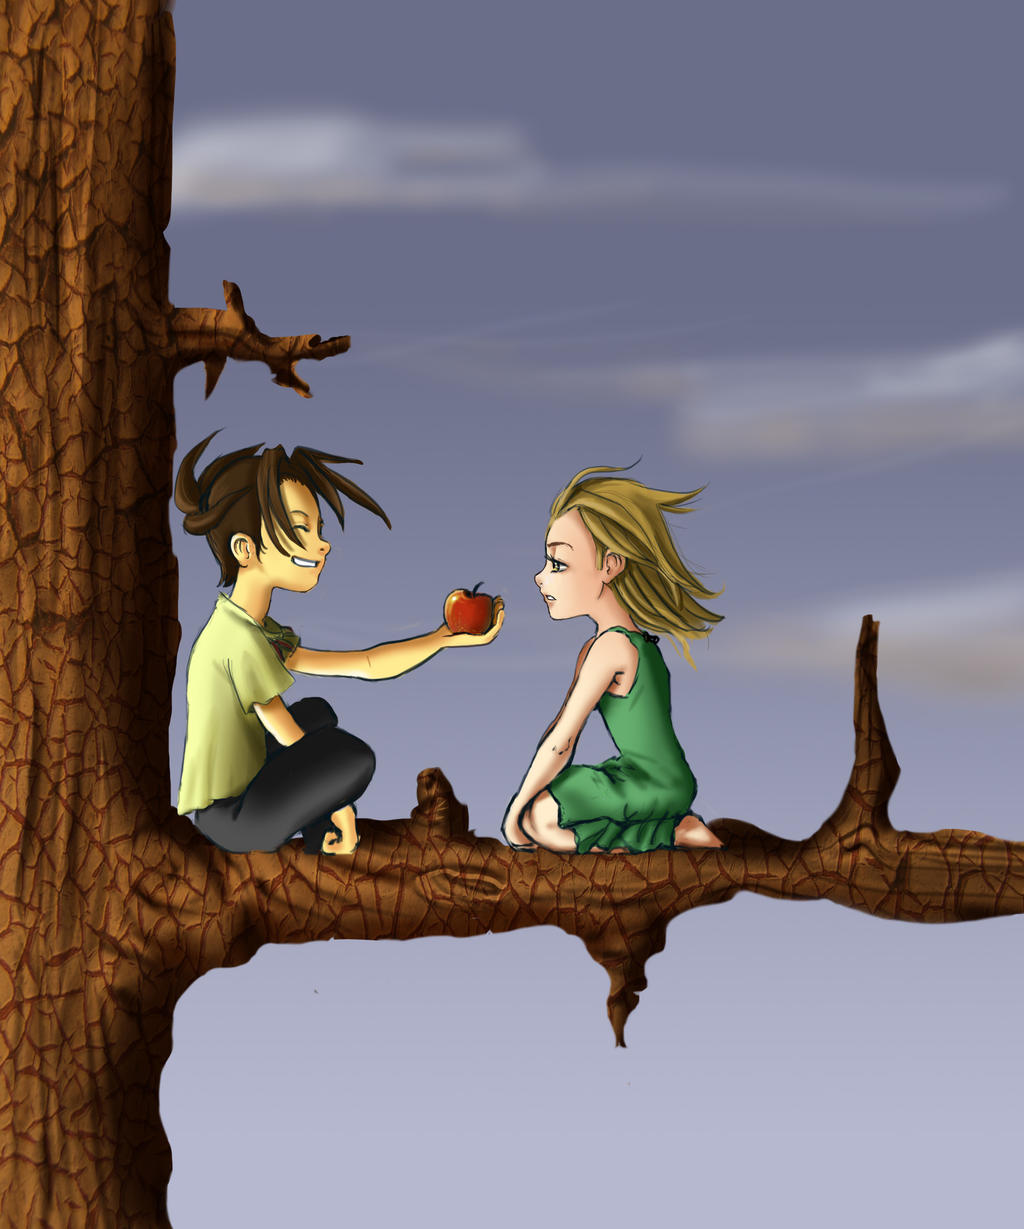 yoh and anna relationship